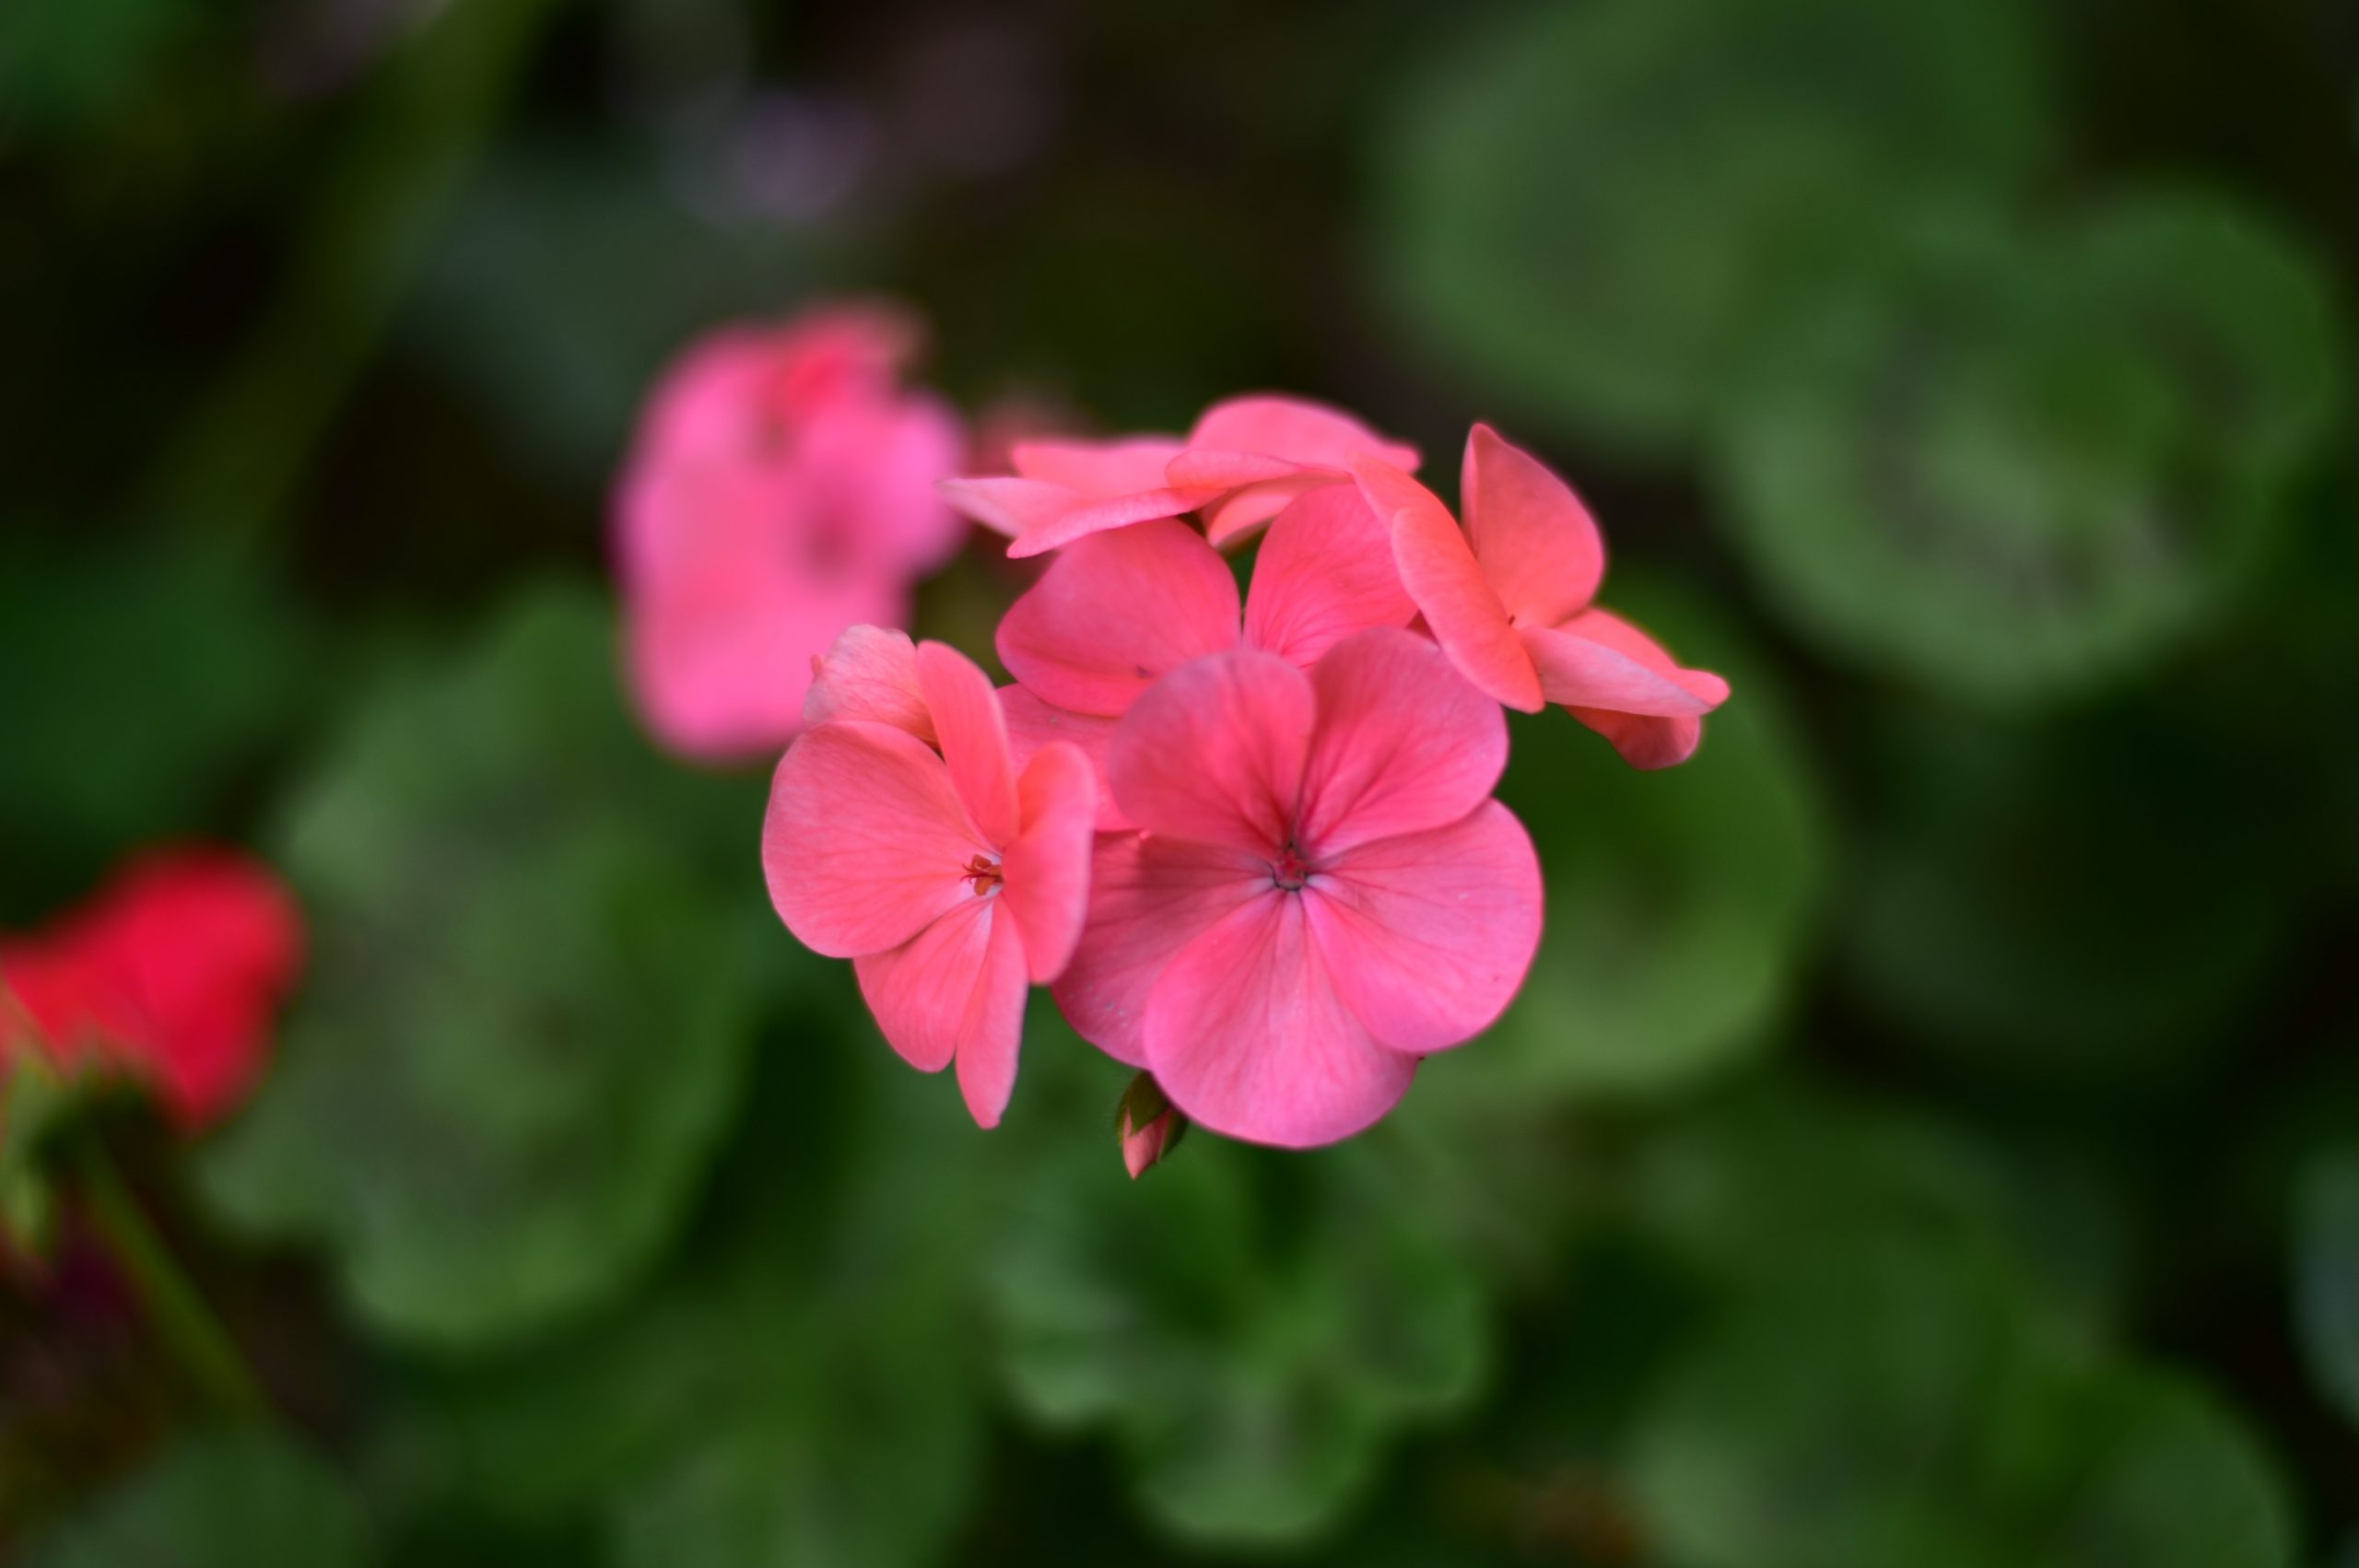 A bunch of pink flowers